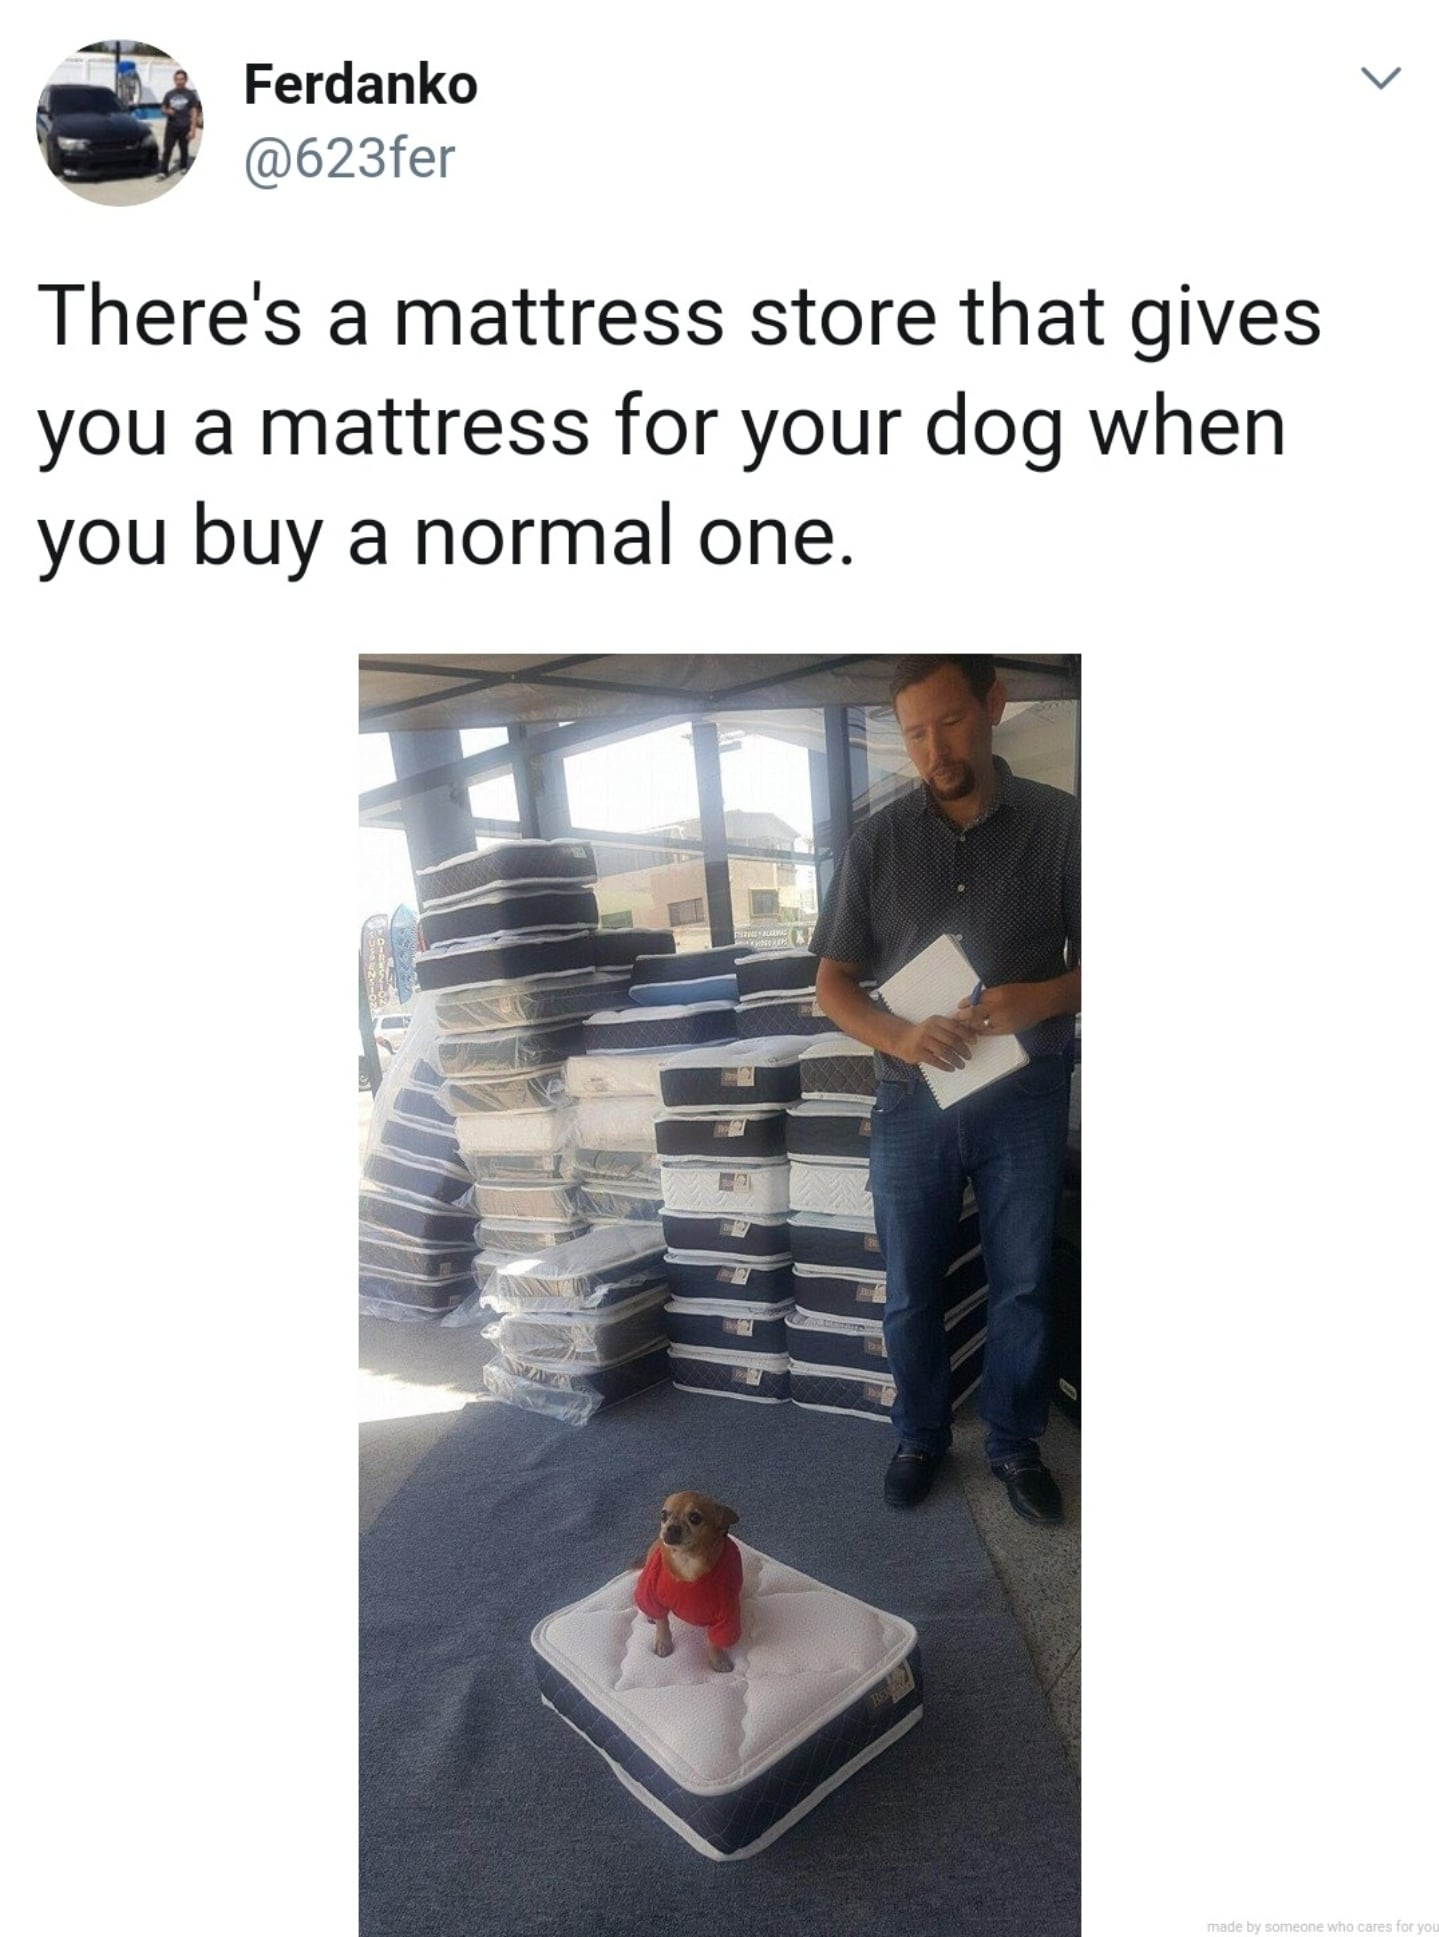 cute wholesome-memes cute text: Ferdanko @623fer There's a mattress store that gives you a mattress for your dog when you buy a normal one. made by someone cares for you